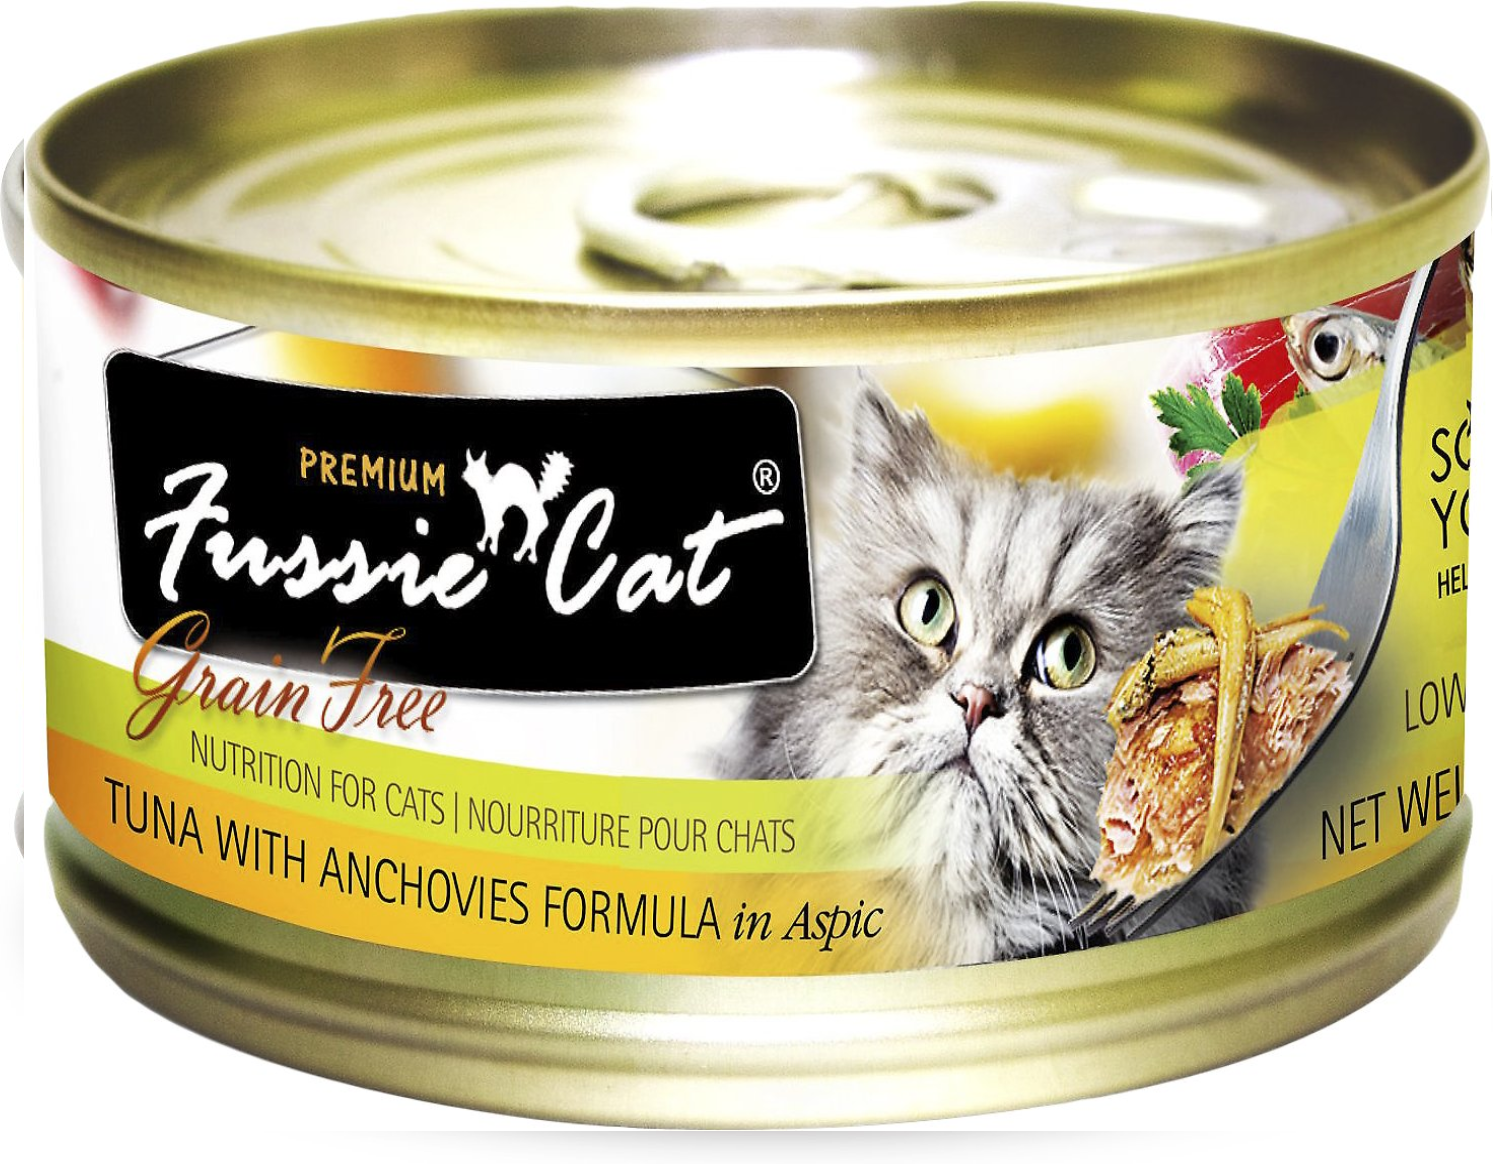 Fussie Cat Tuna With Anchovies Formula 2.8 oz